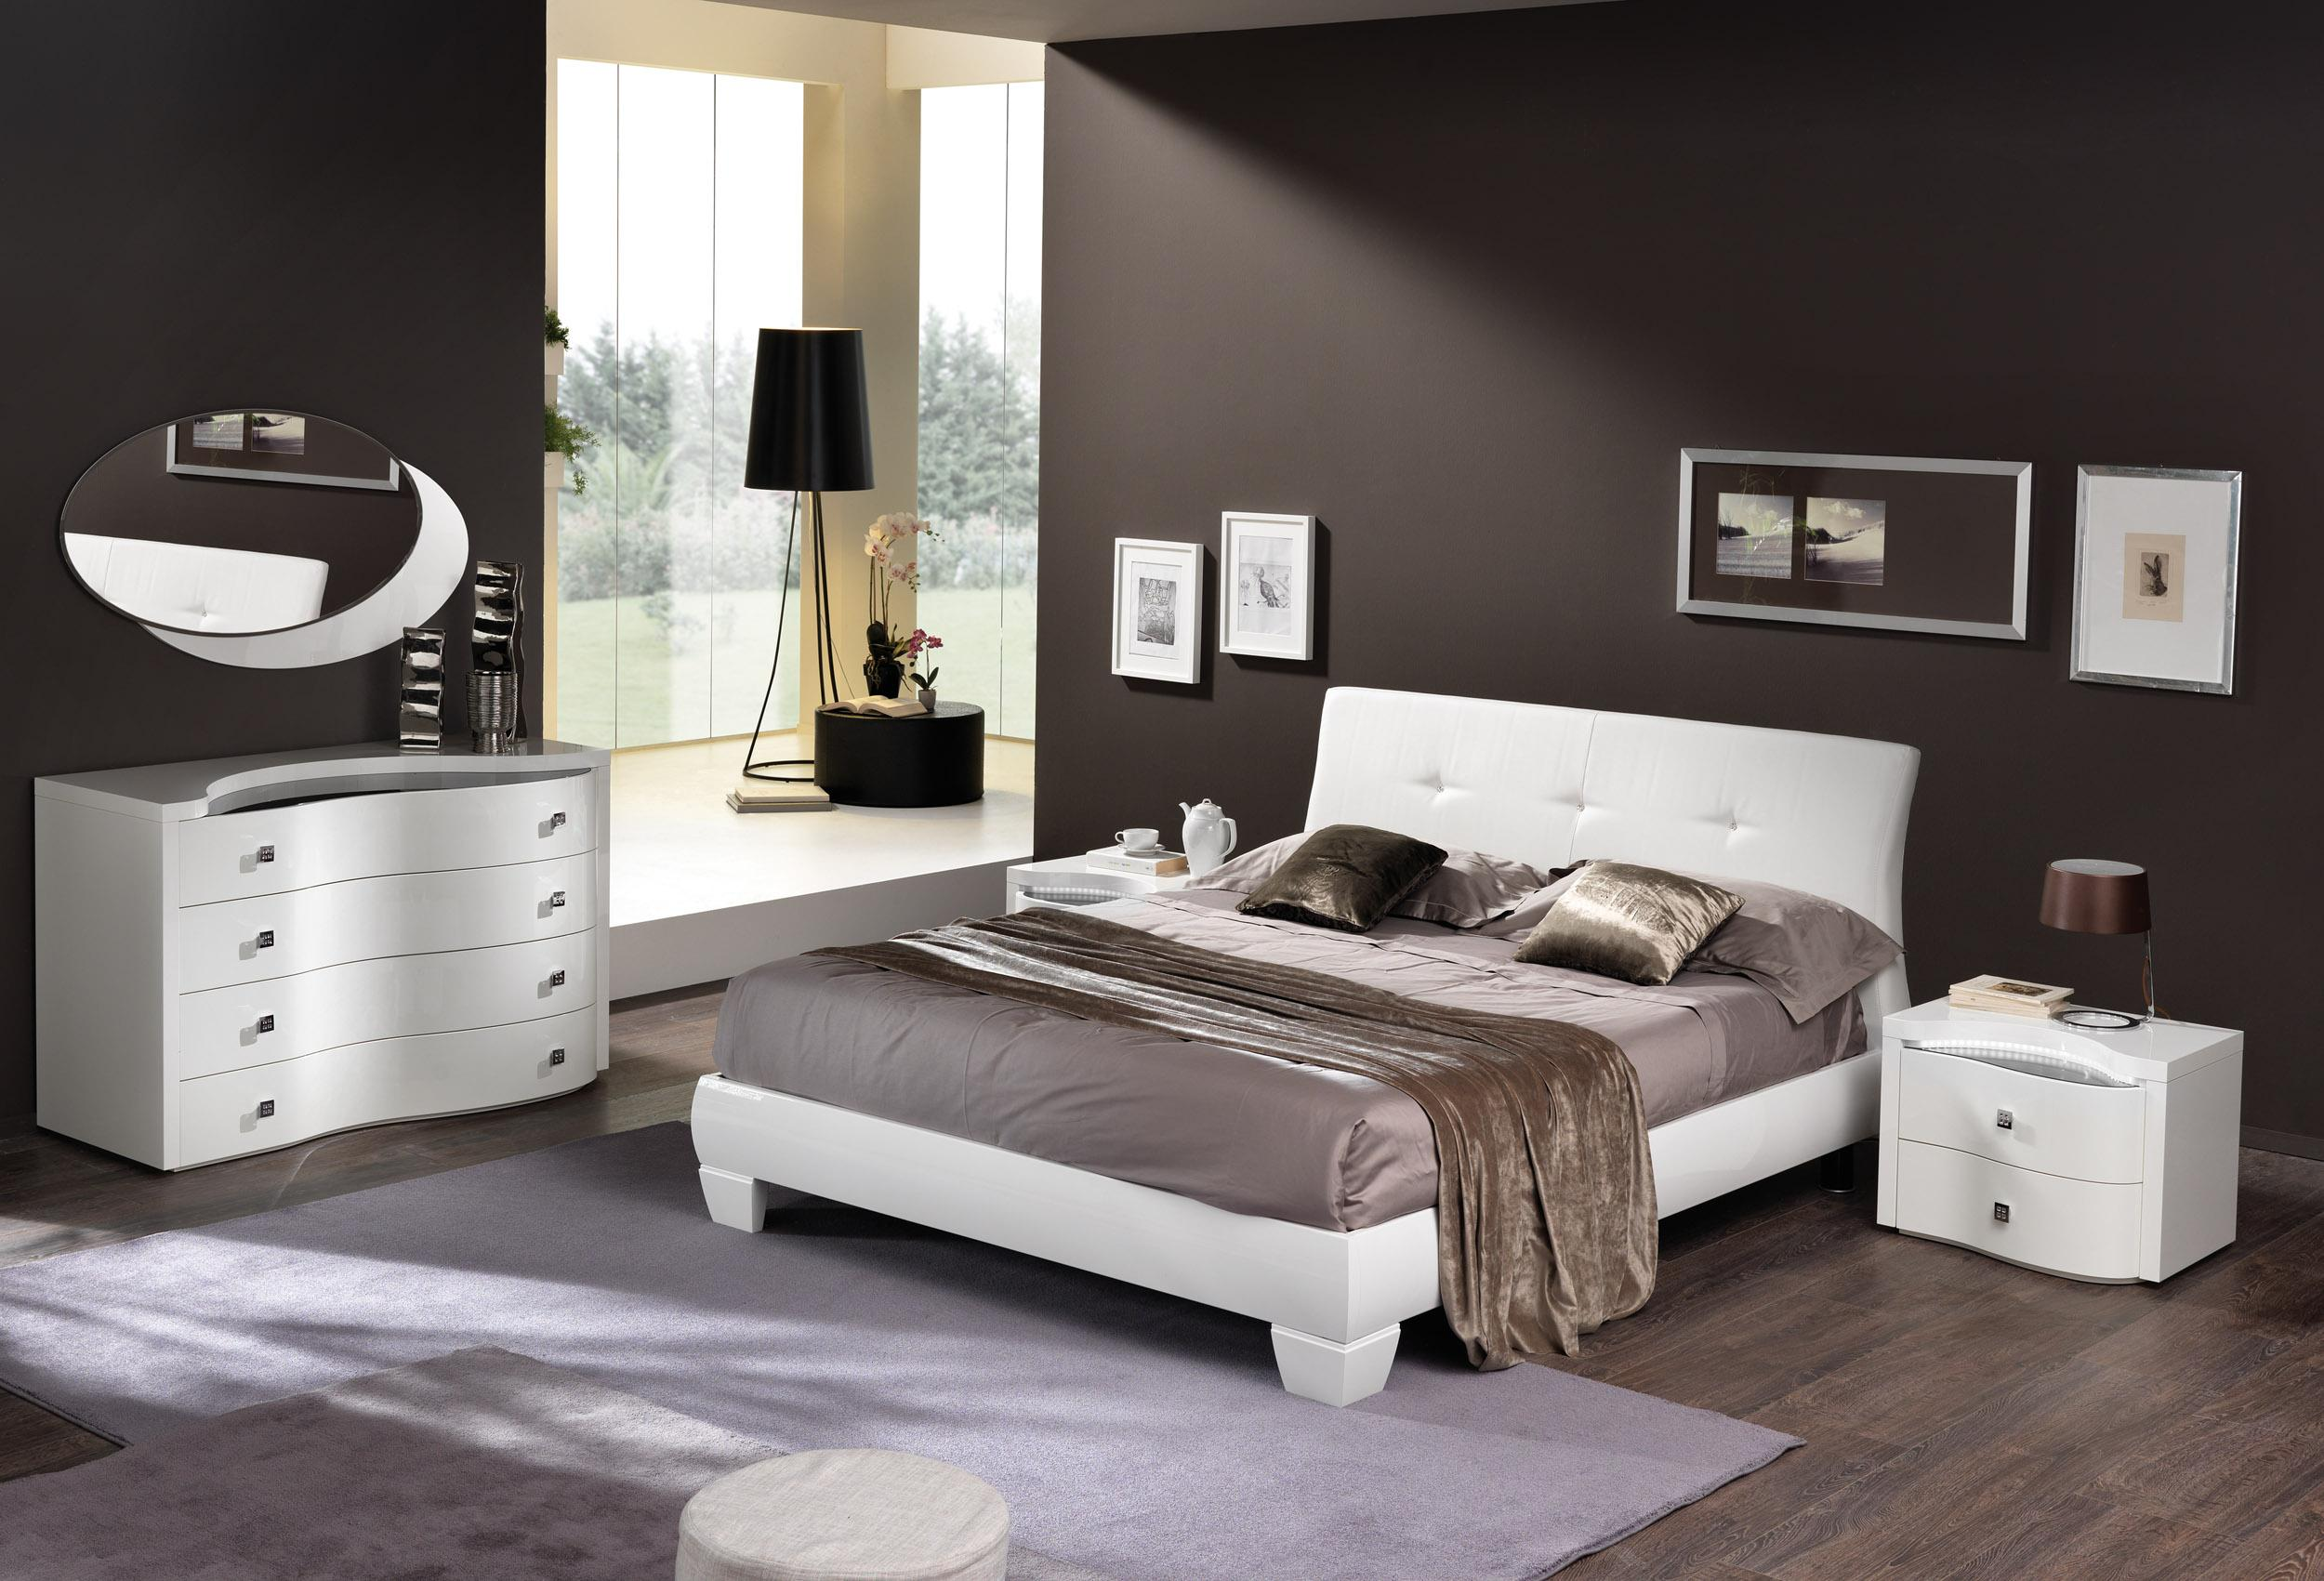 made in italy leather elite modern bedroom set jackson 16395 | white italian master bedroom with leather headboard spar disco